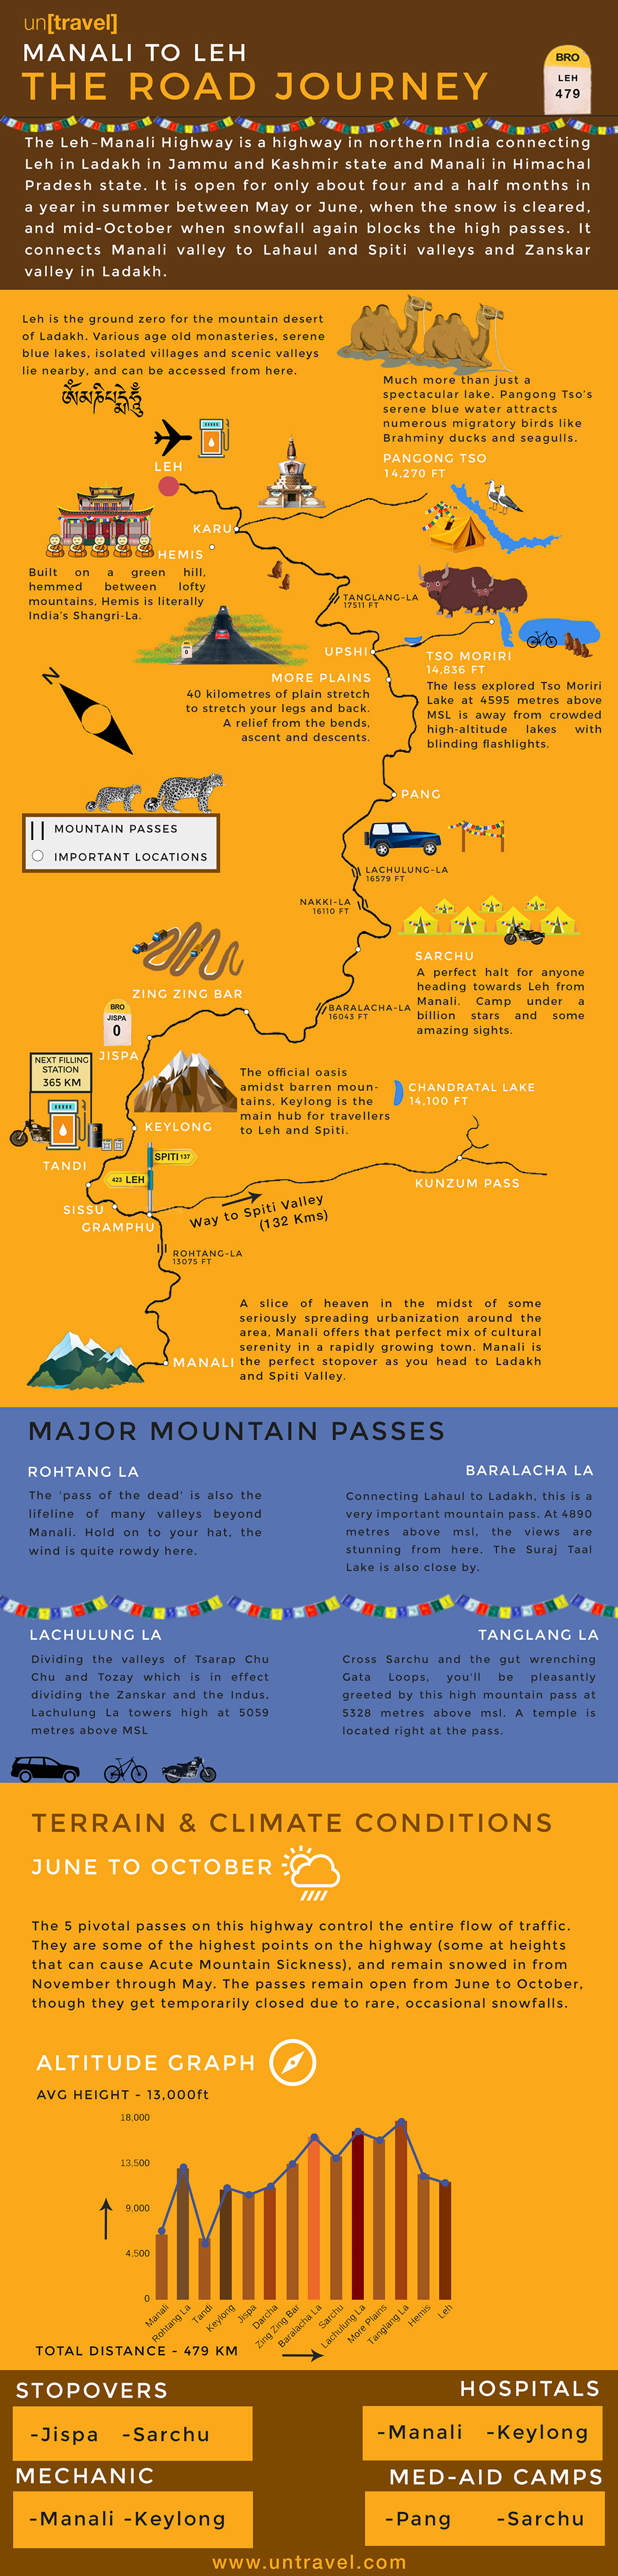 Manali to Leh in India: The Road Journey